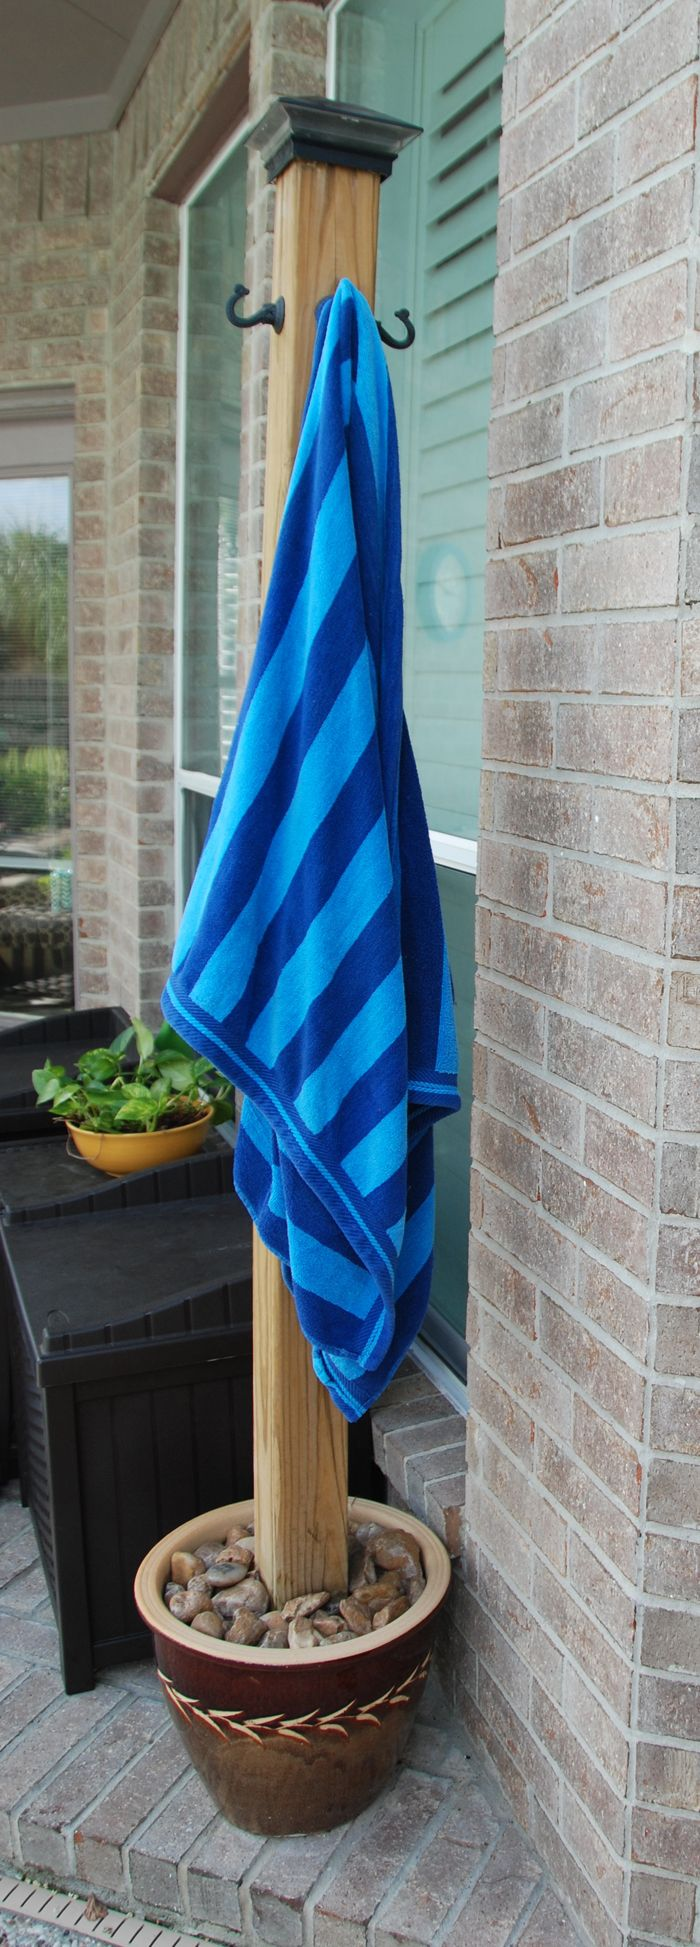 Diy Pool Towel Rack Holder We Made This Stand To Hang Our Wet Towels Dry After Swimming